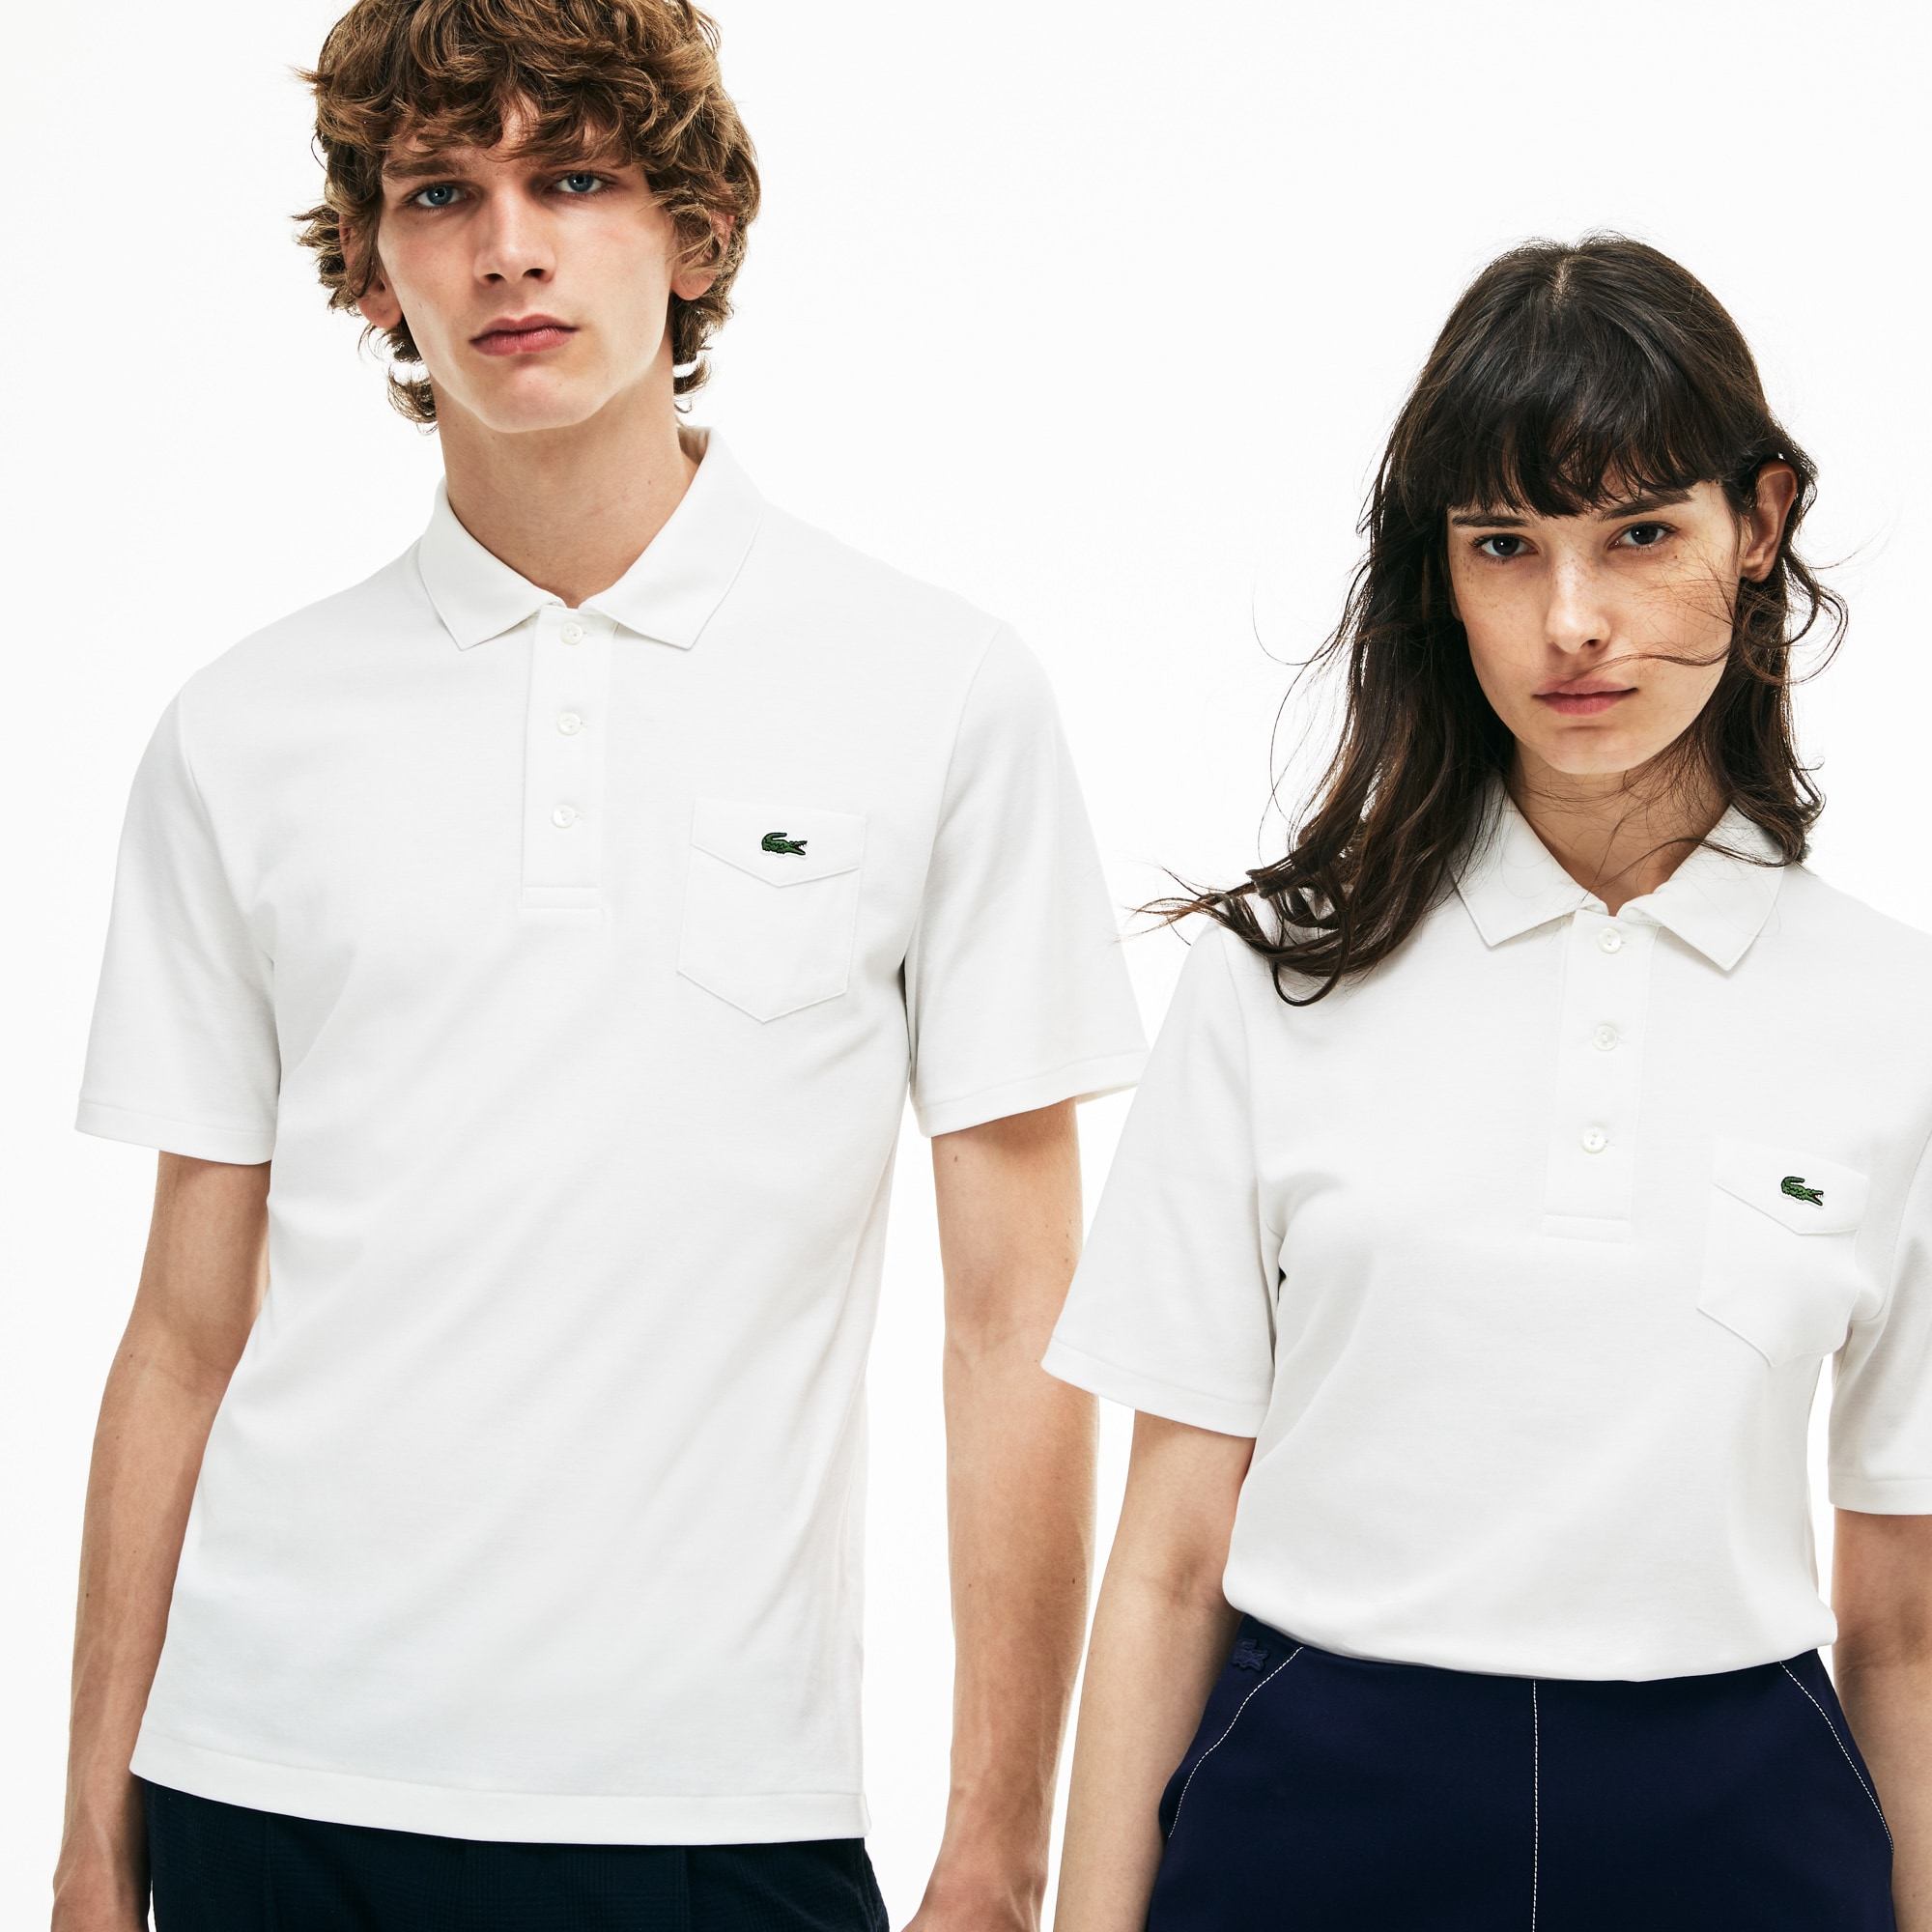 Unisex 1930s Revival Lacoste 85th Anniversary Limited Edition Interlock Polo Shirt